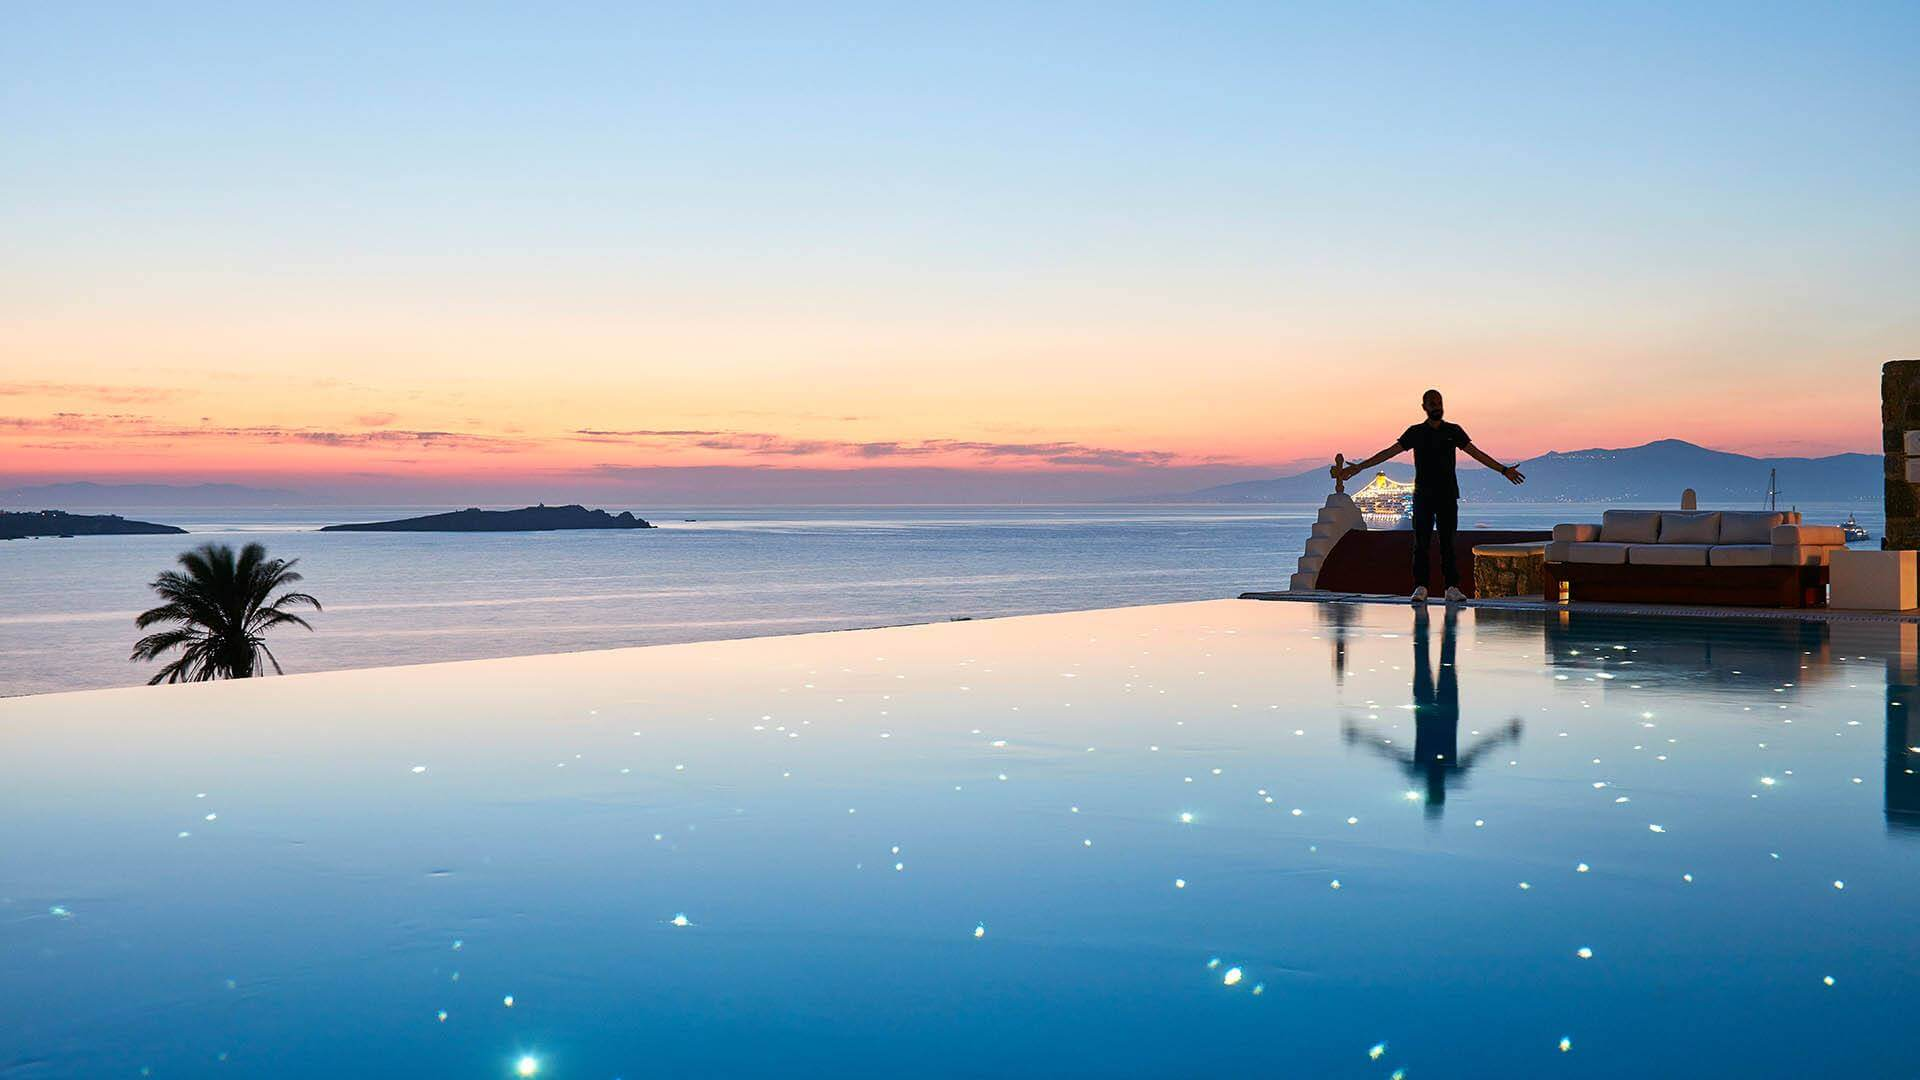 boutique hotels holidays luxurious boutique hotels 5 Charming Boutique Hotels in Europe Mykonos 7